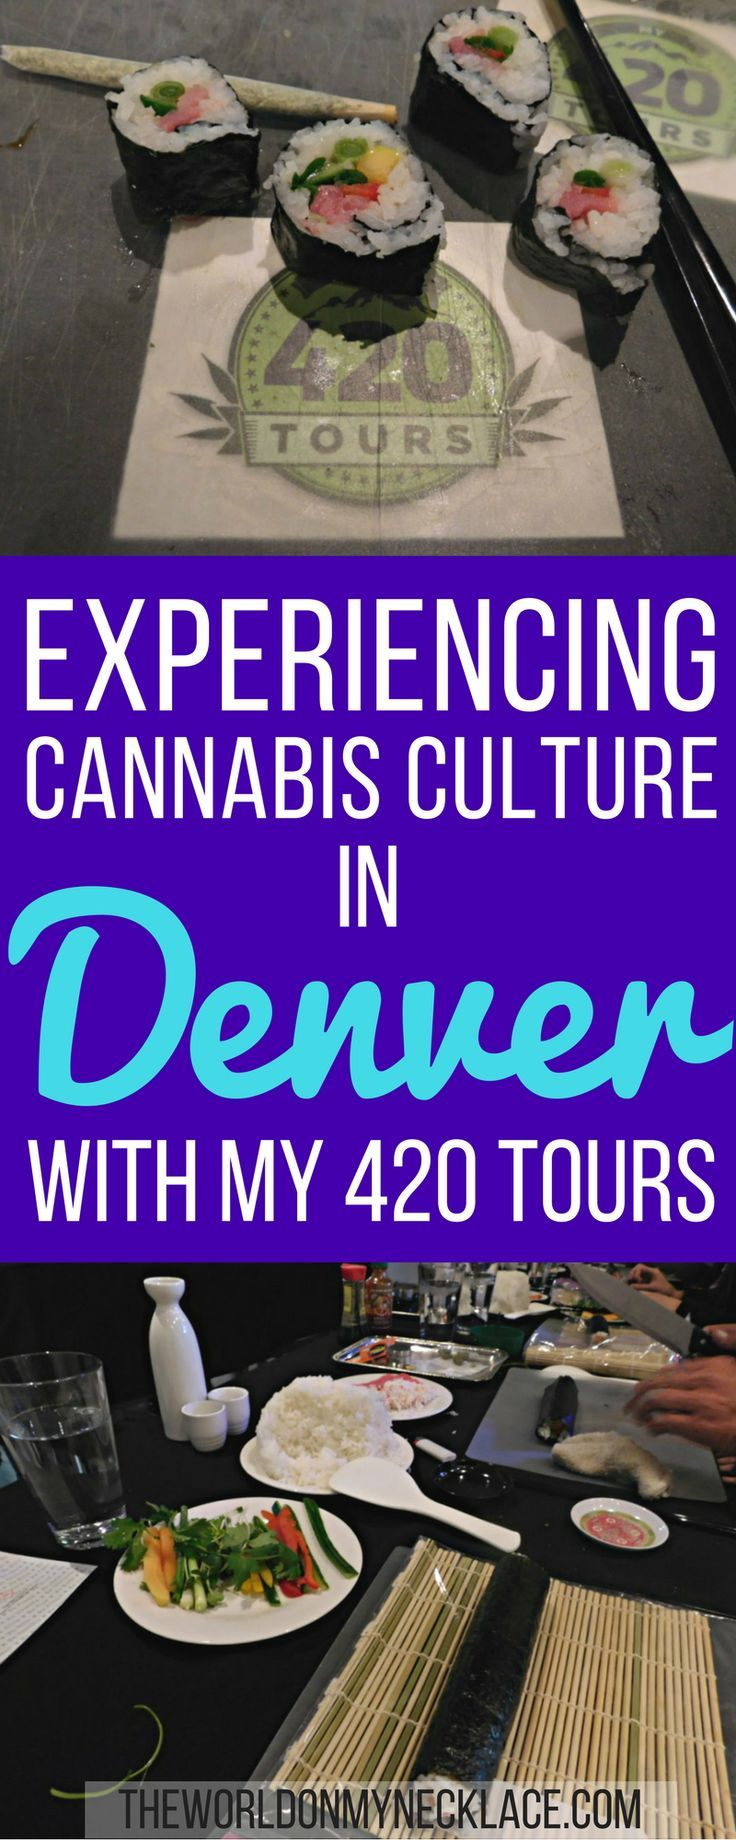 Since marijuana became legal recreationally in Colorado, there has been an influx of people coming to the state to partake, with Colorado's biggest city, Denver, at the forefront of Cannabis Tourism. It can be overwhelming to delve into the cannabis culture yourself - that's where My 420 Tours comes in. Click through to find out about my experience doing their Sushi, Sake and Joint Rolling Class in Denver.   The World on my Necklace #cannabis #denver #milehighcity